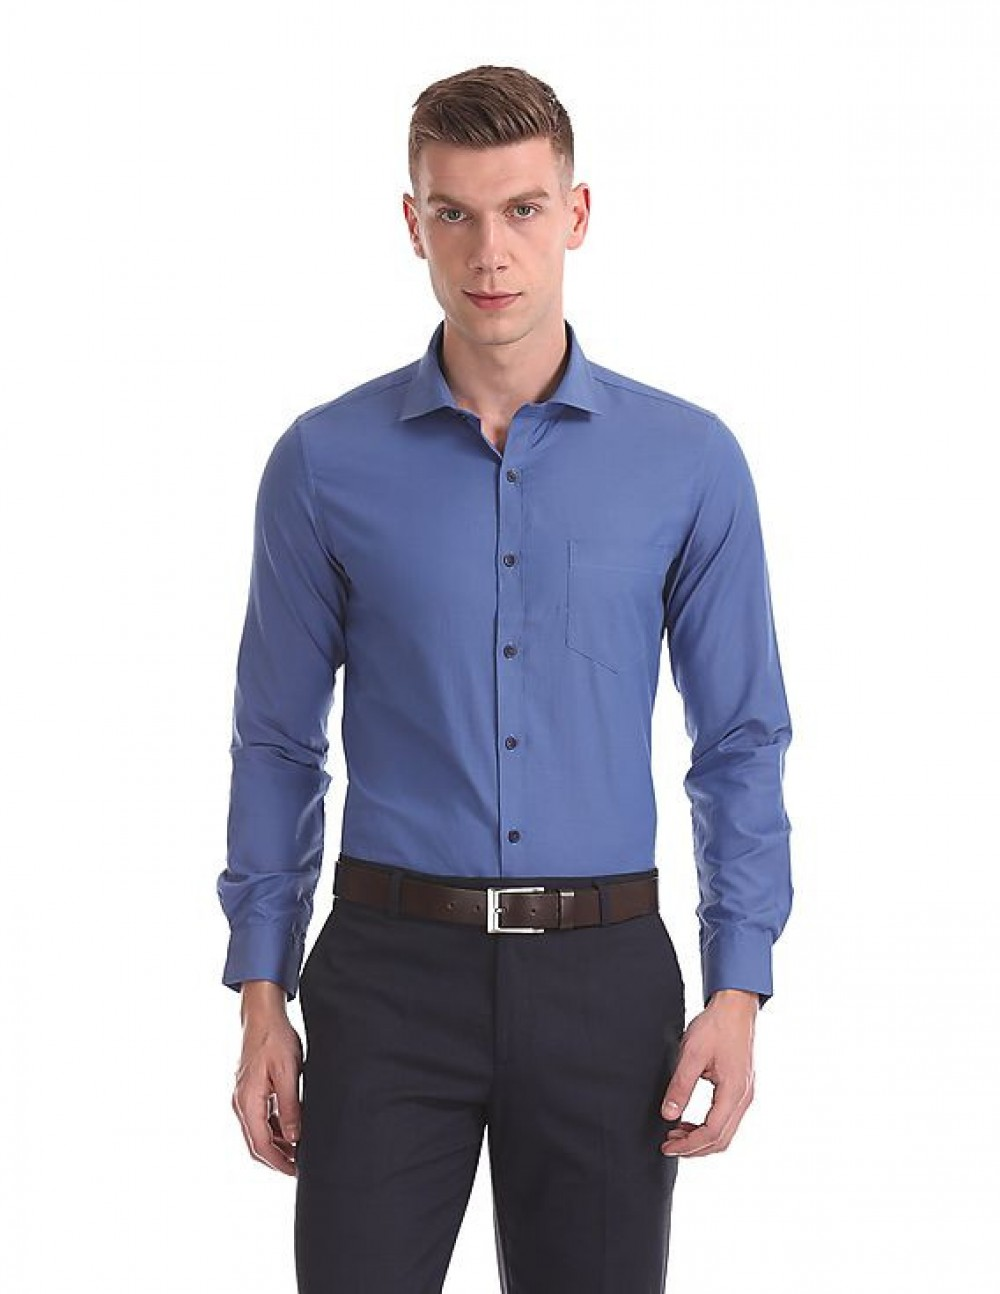 Attractive Plain Blue Formal Look Full Sleeves Office Wear Shirt